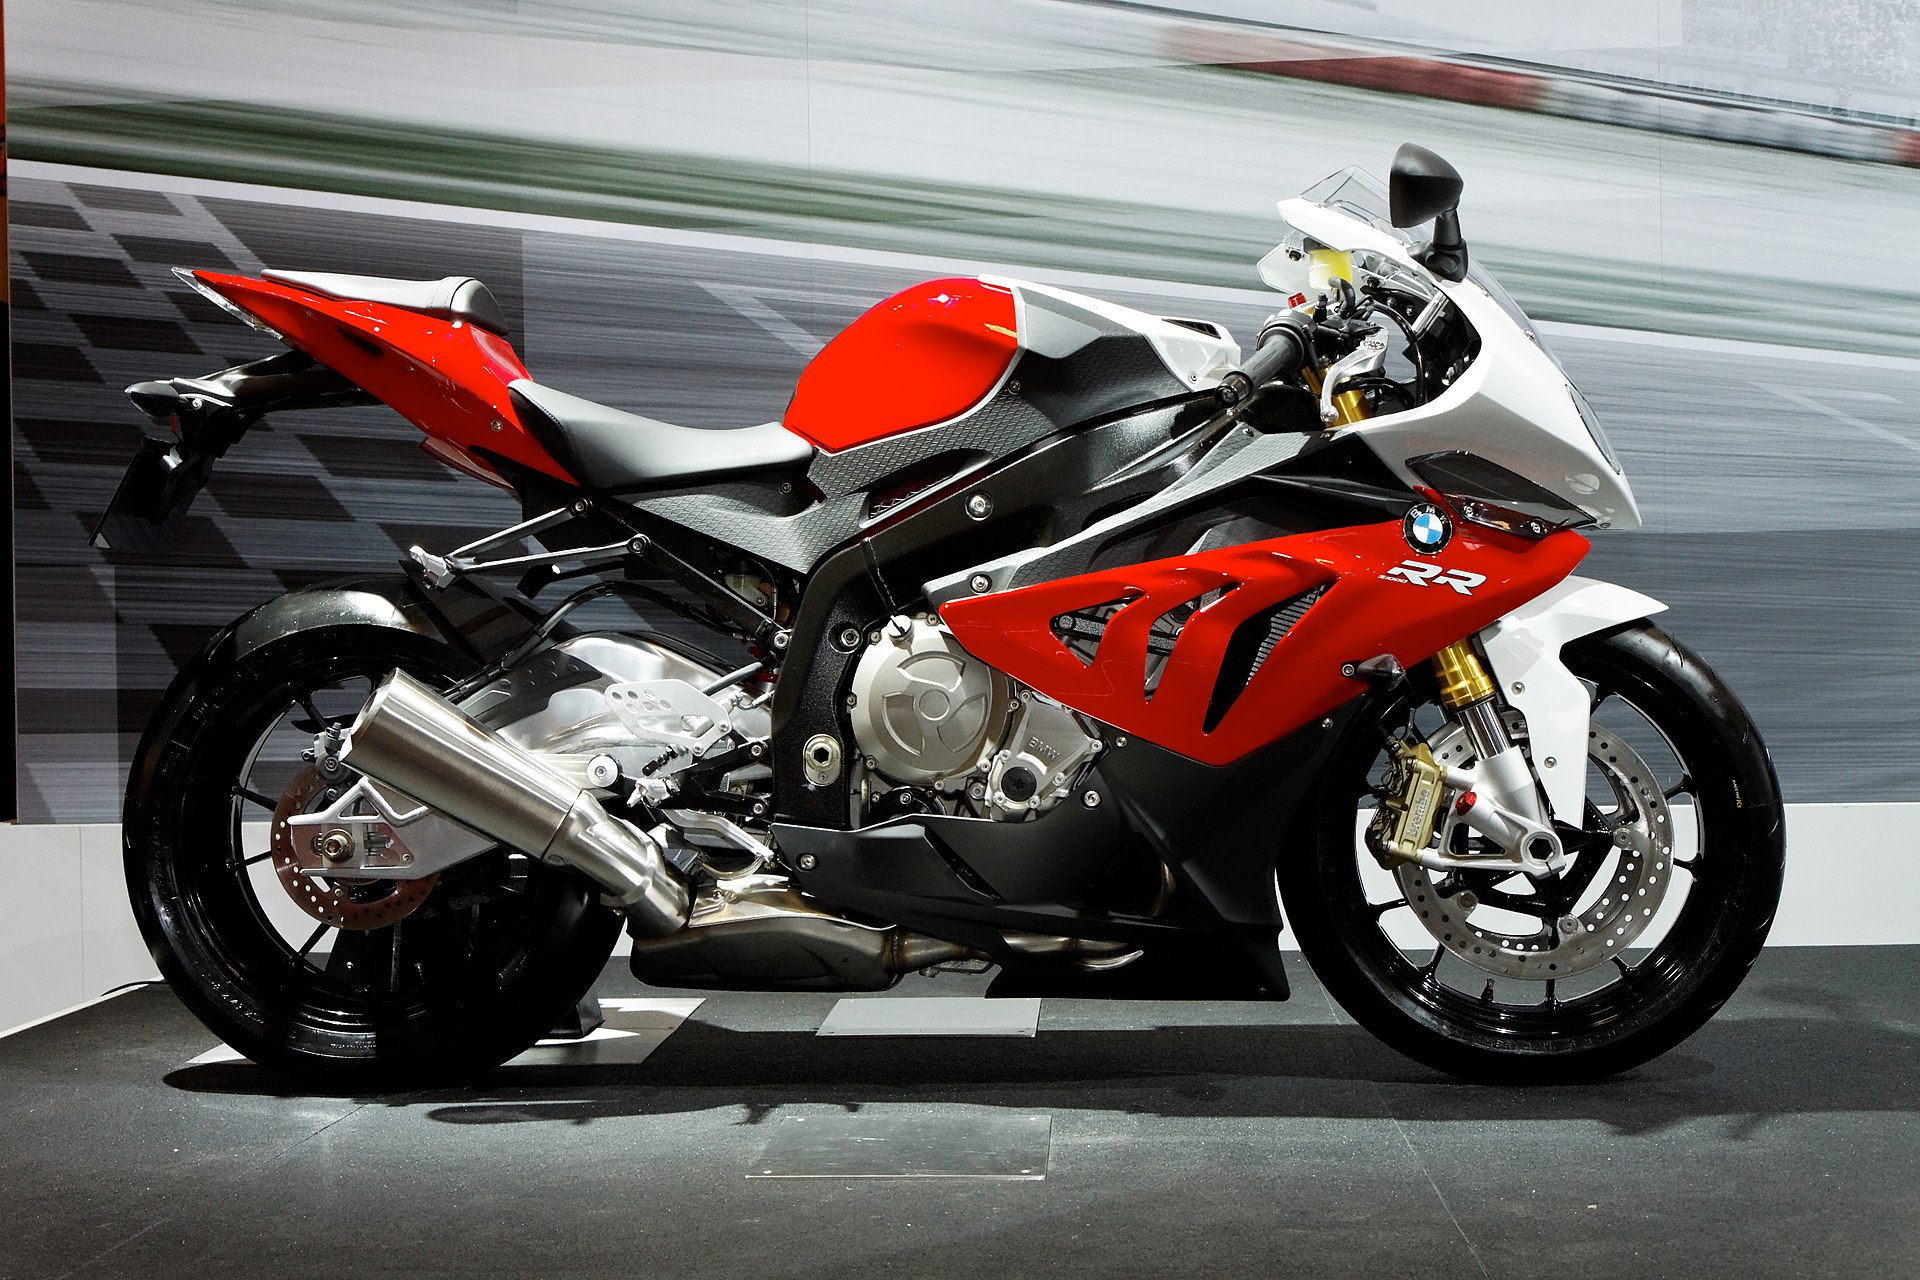 bmw s1000rr wikipedia. Black Bedroom Furniture Sets. Home Design Ideas